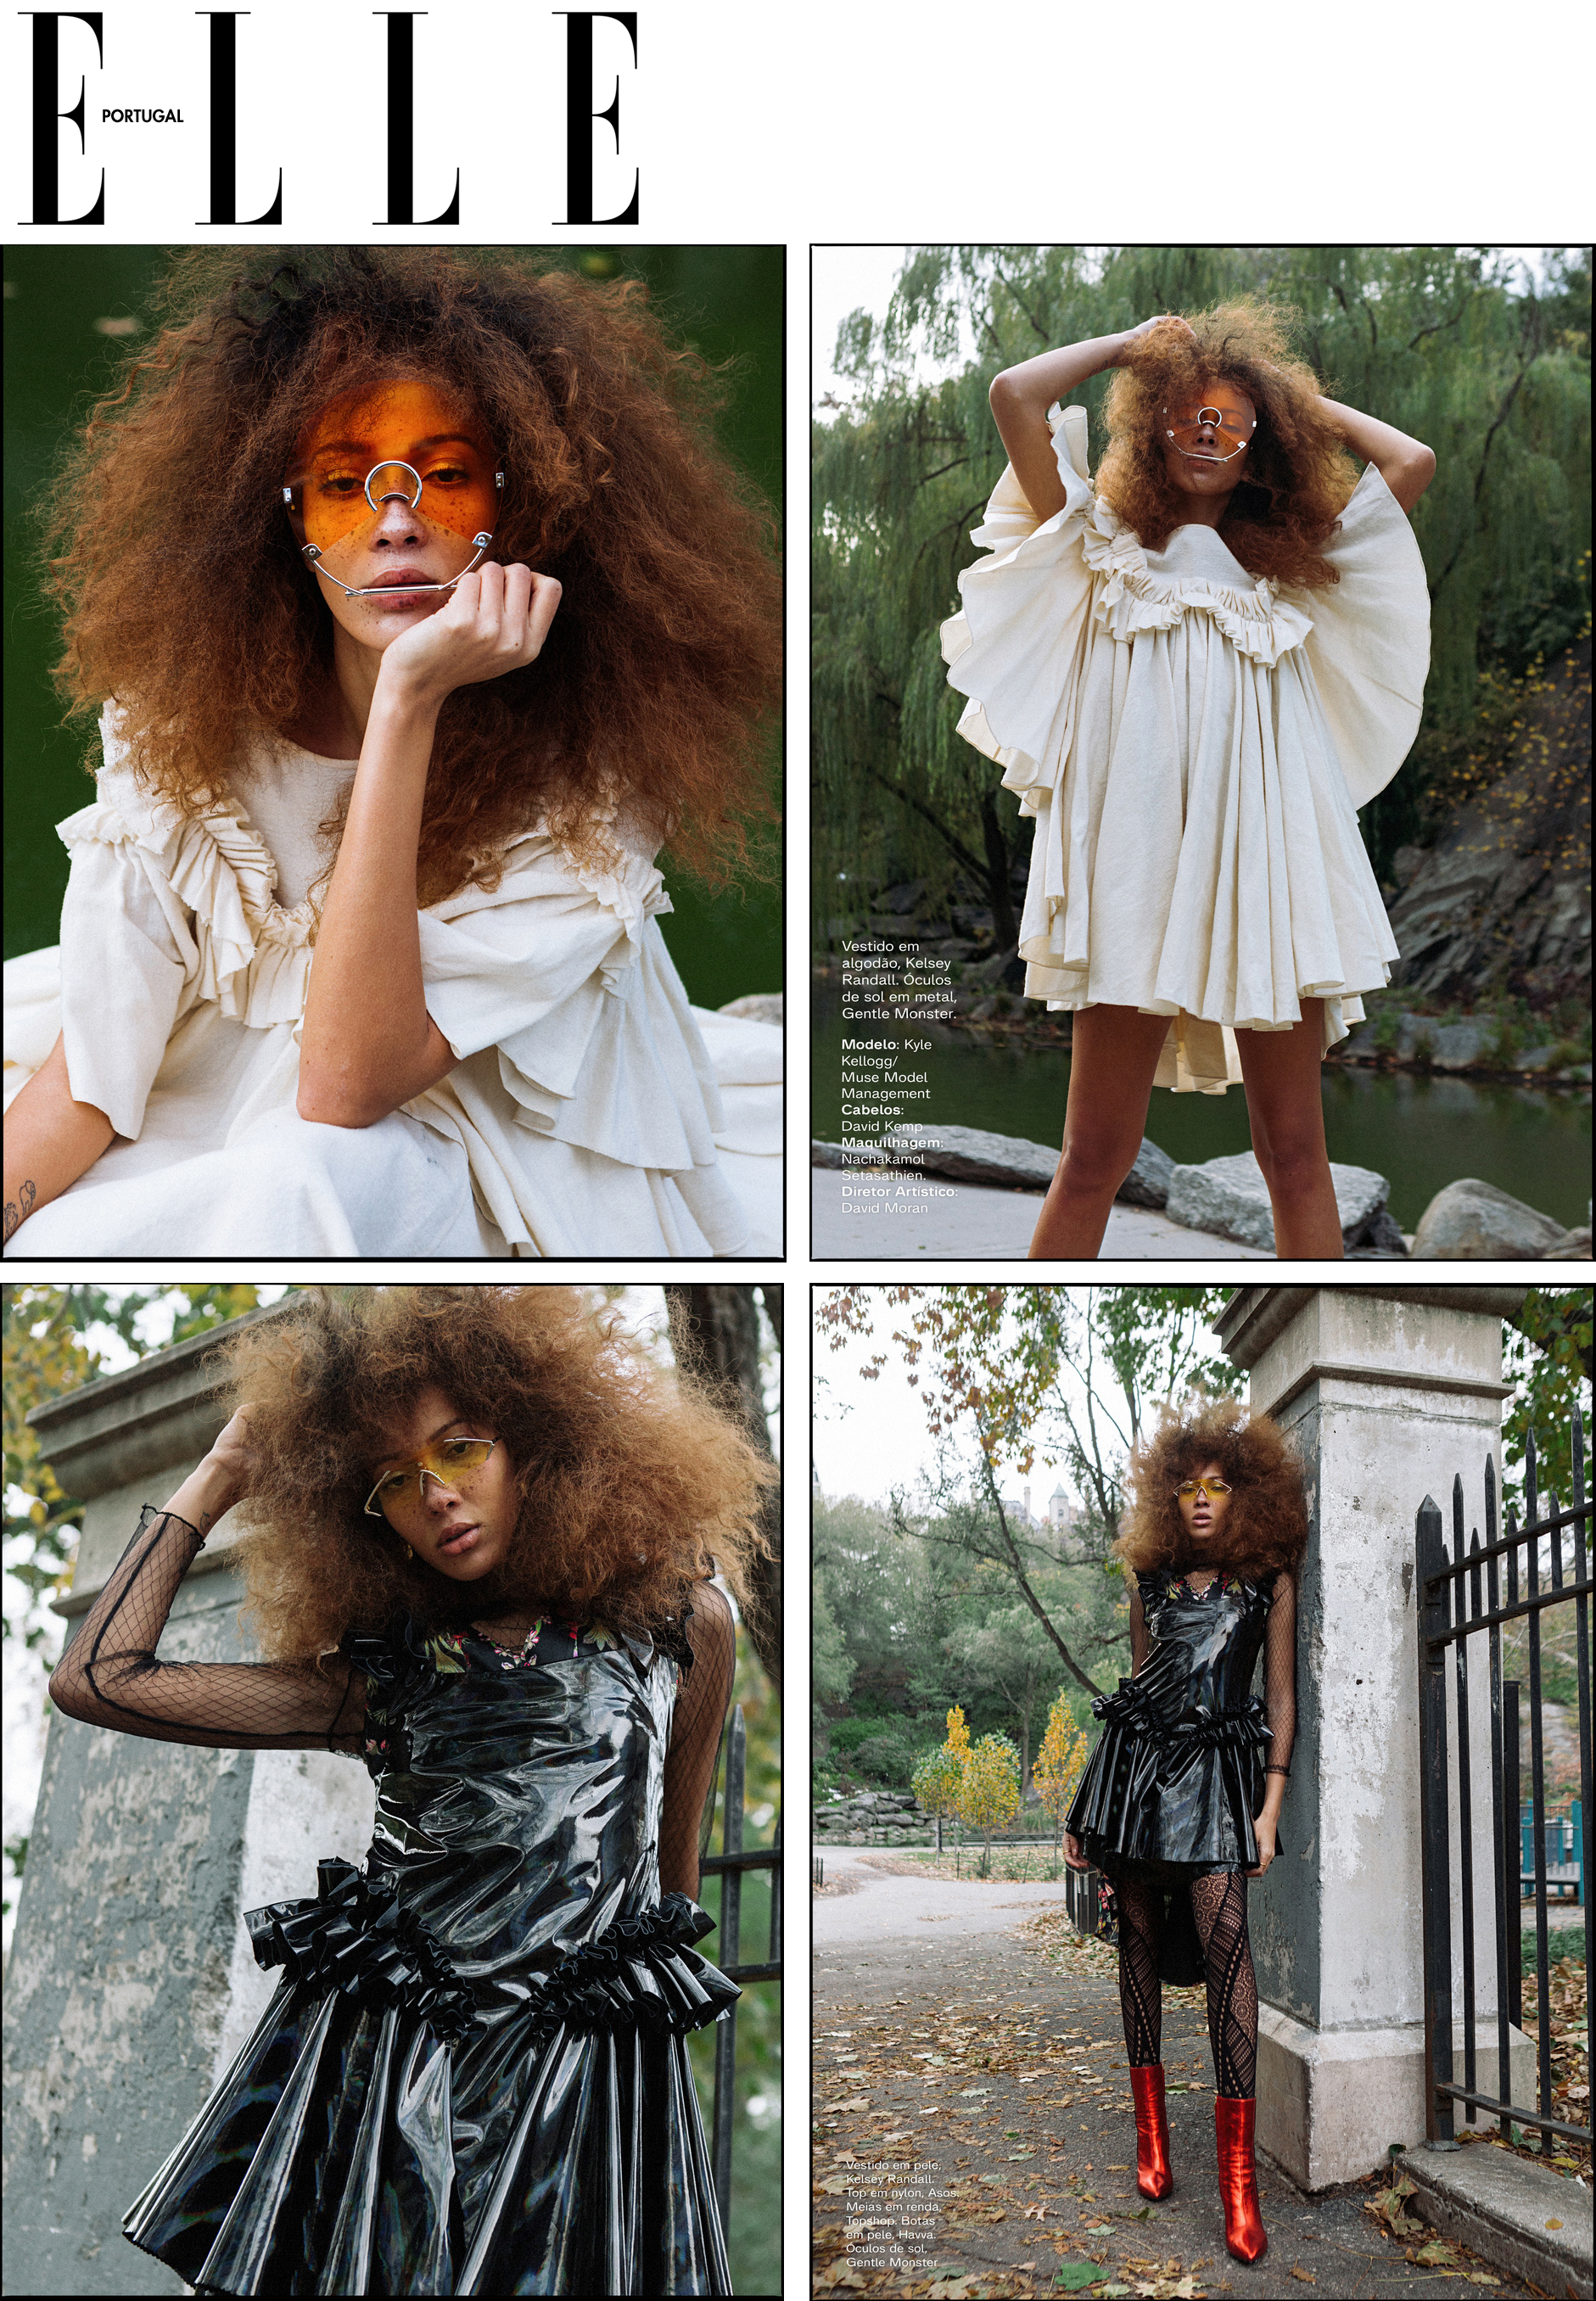 Elle Portugal March 2019 issue fashion spread featuring Kelsey Randall cream flannel angel dress and black holographic vinyl ruffle dress model kyle kellogg